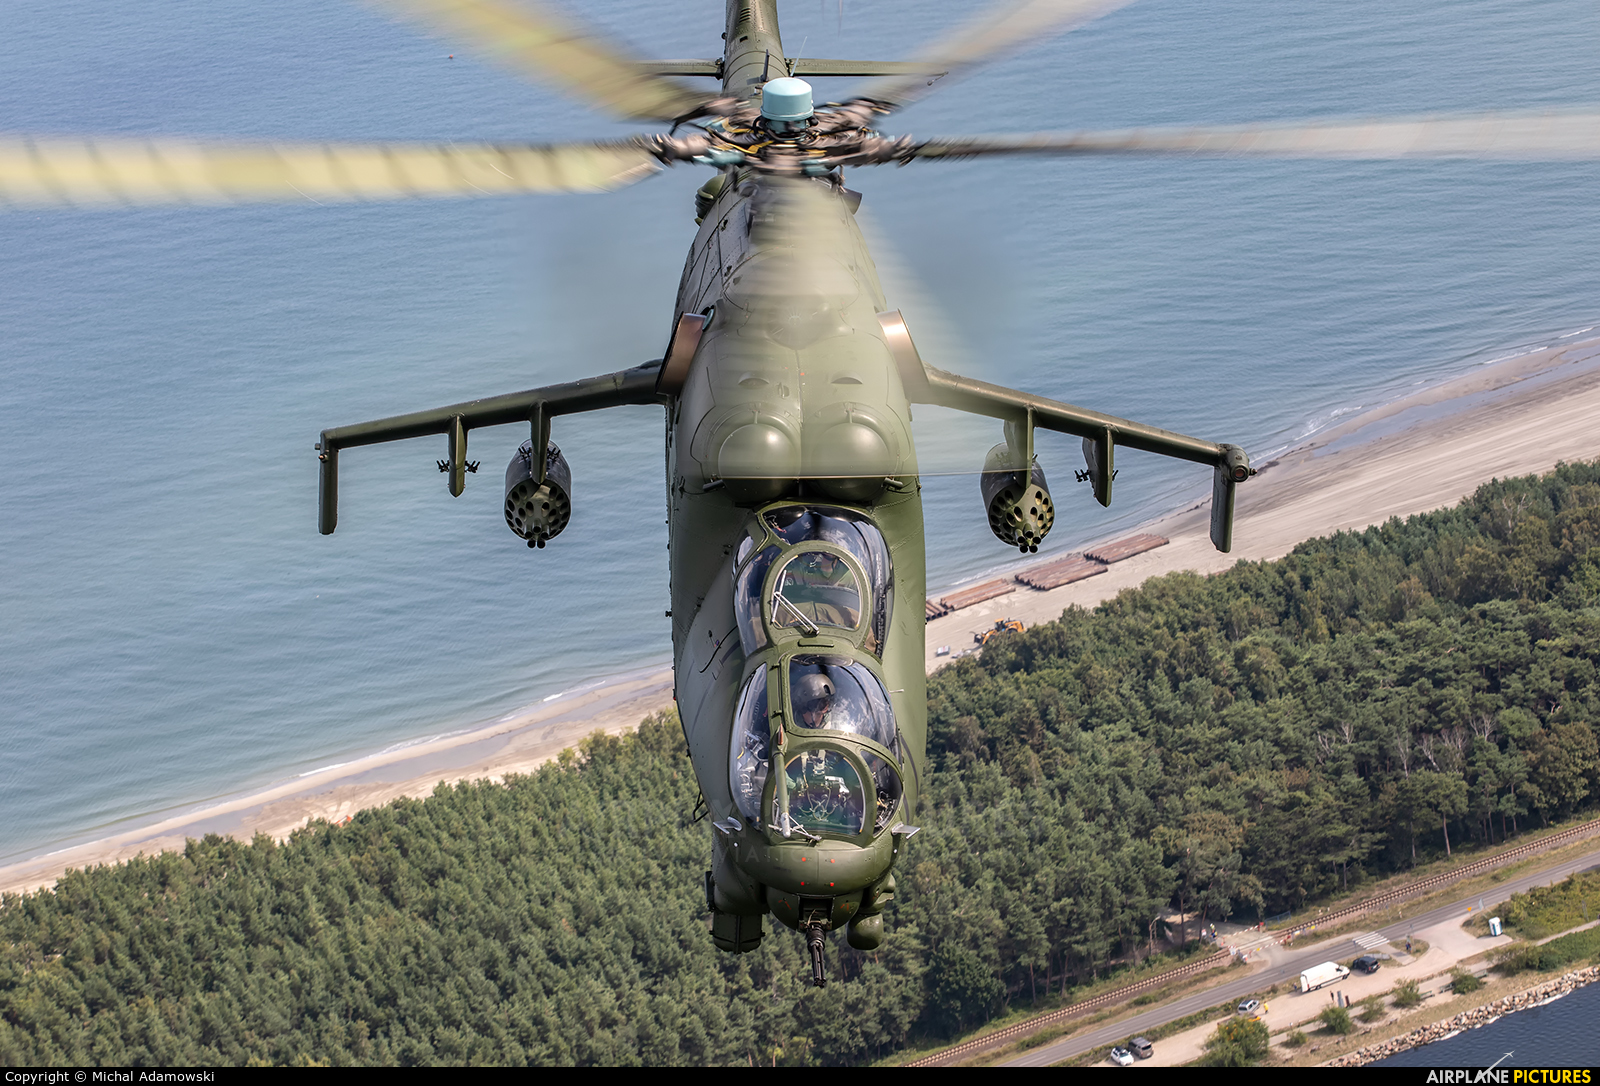 Poland - Army 461 aircraft at In Flight - Poland